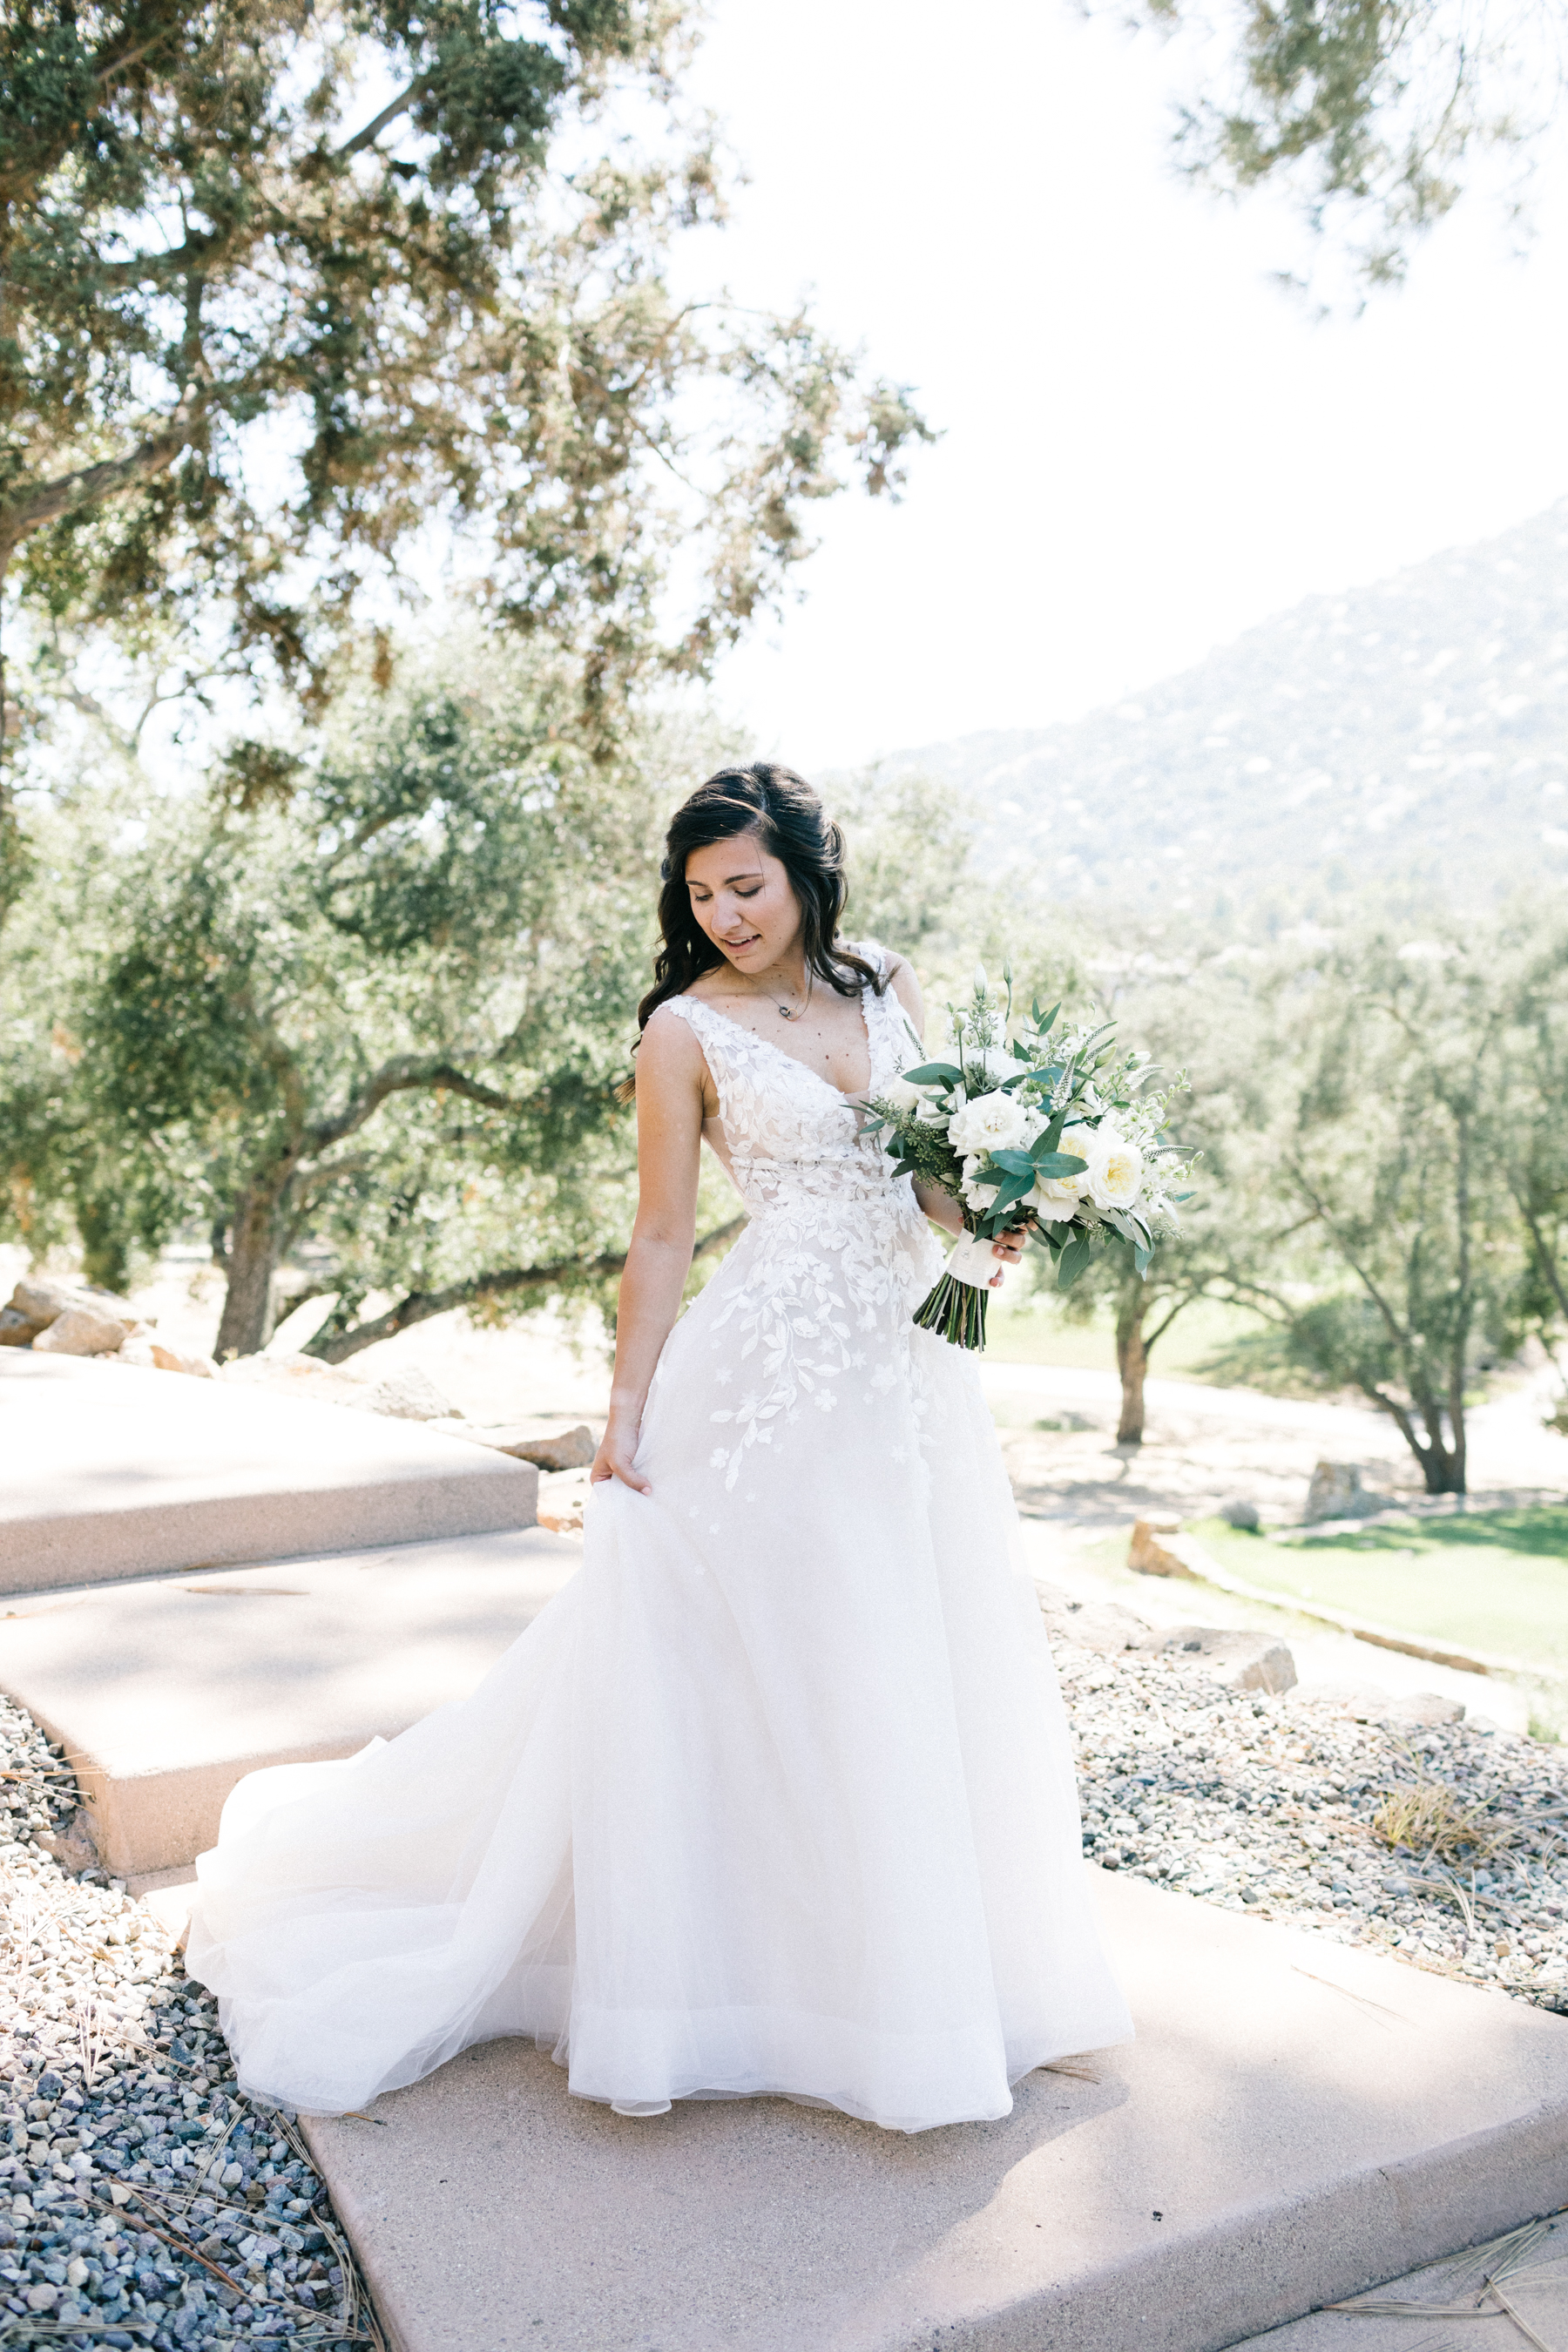 Jordan and Alex's Mt. Woodson Ramona Wedding Great Woodland Photography 8-31-19-11.jpg